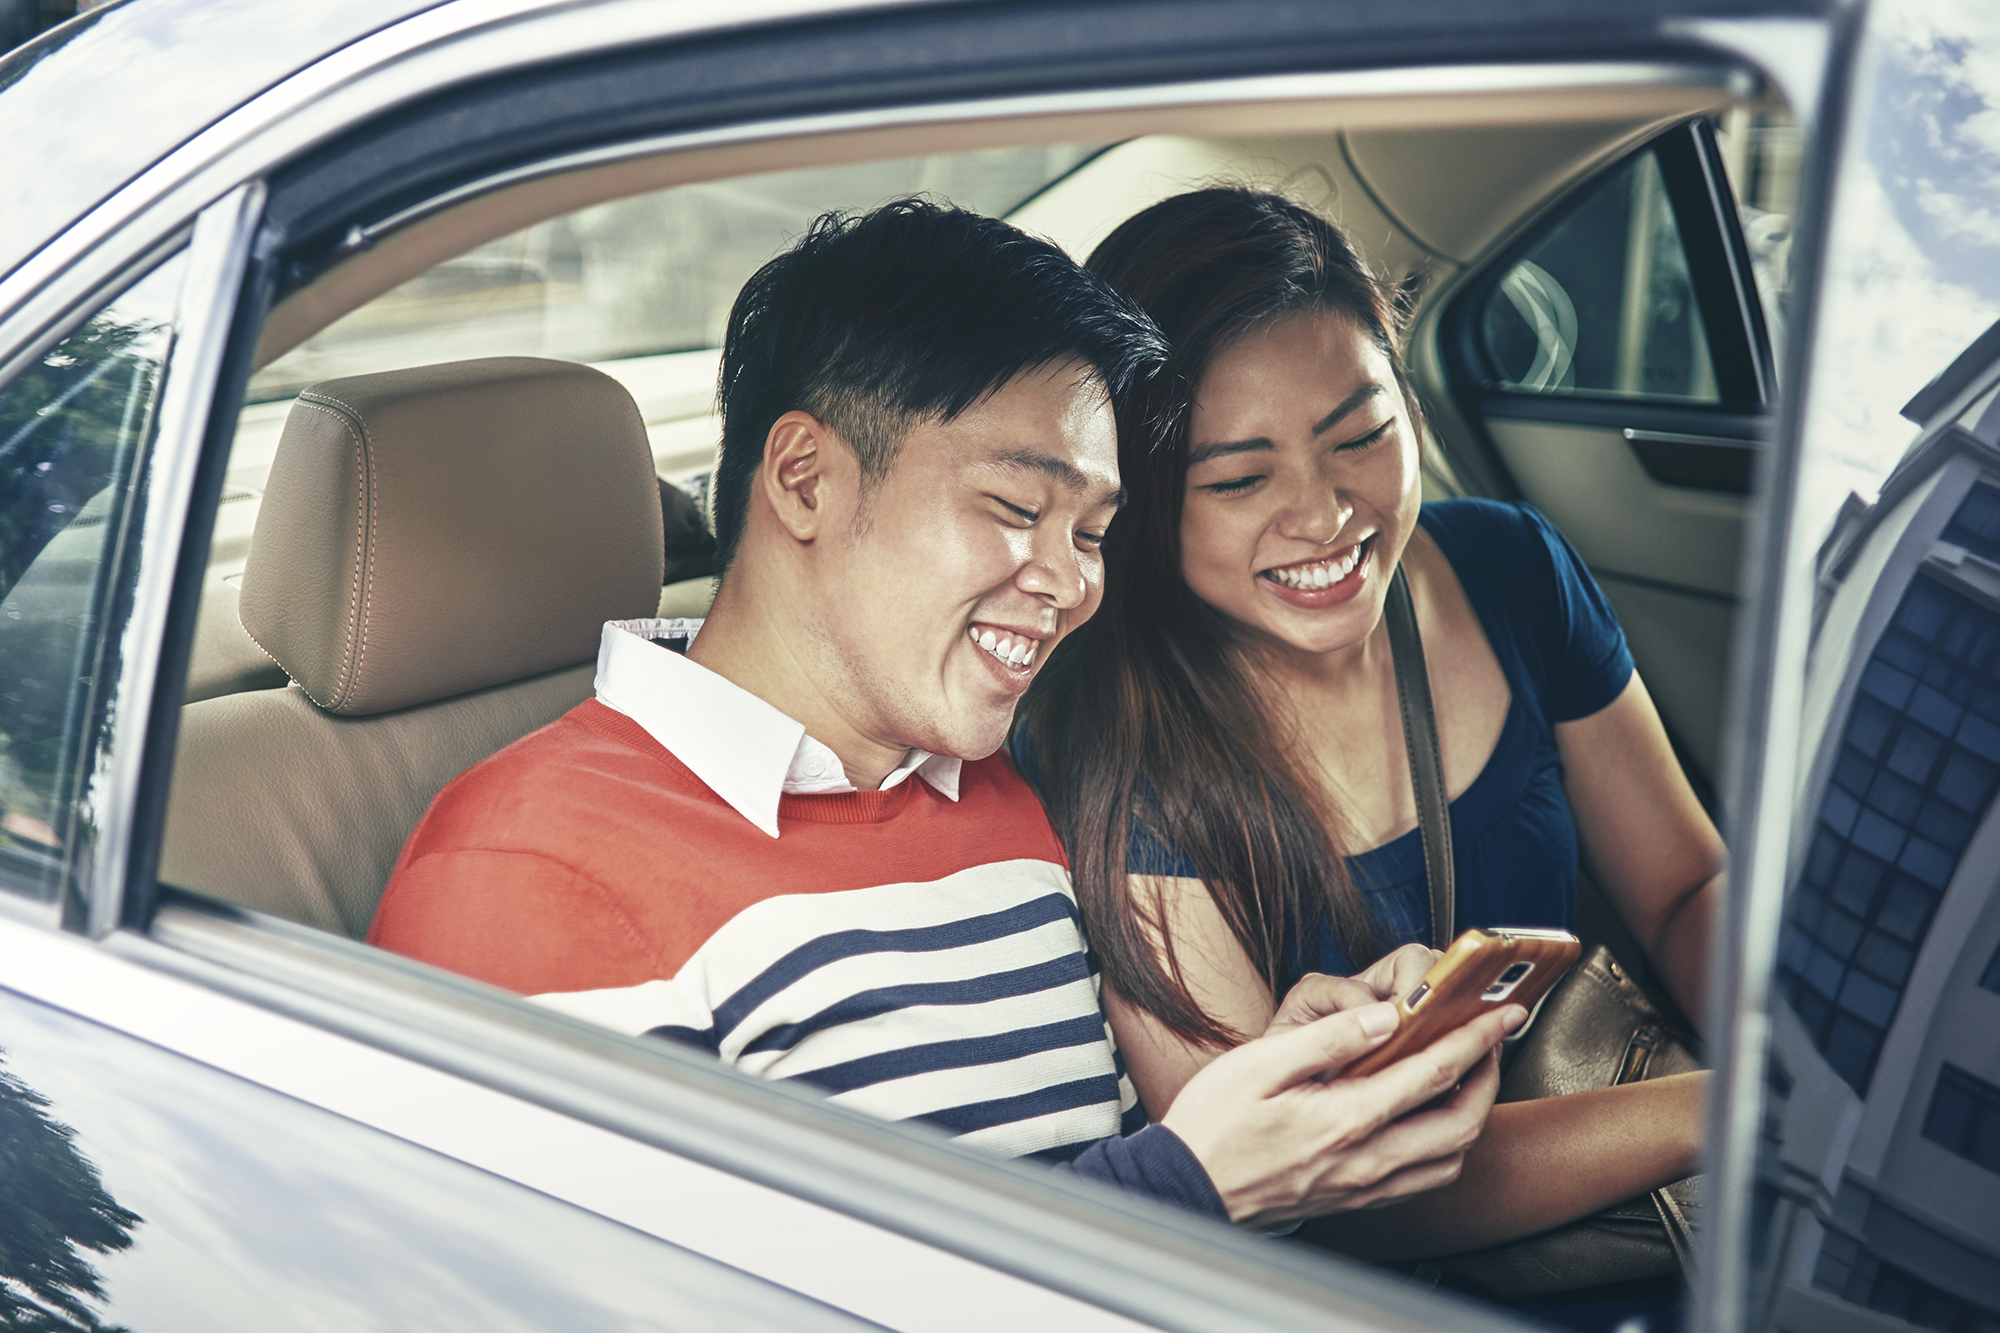 Grabtaxi Introduces Grabcar Economy An Affordable Complement To